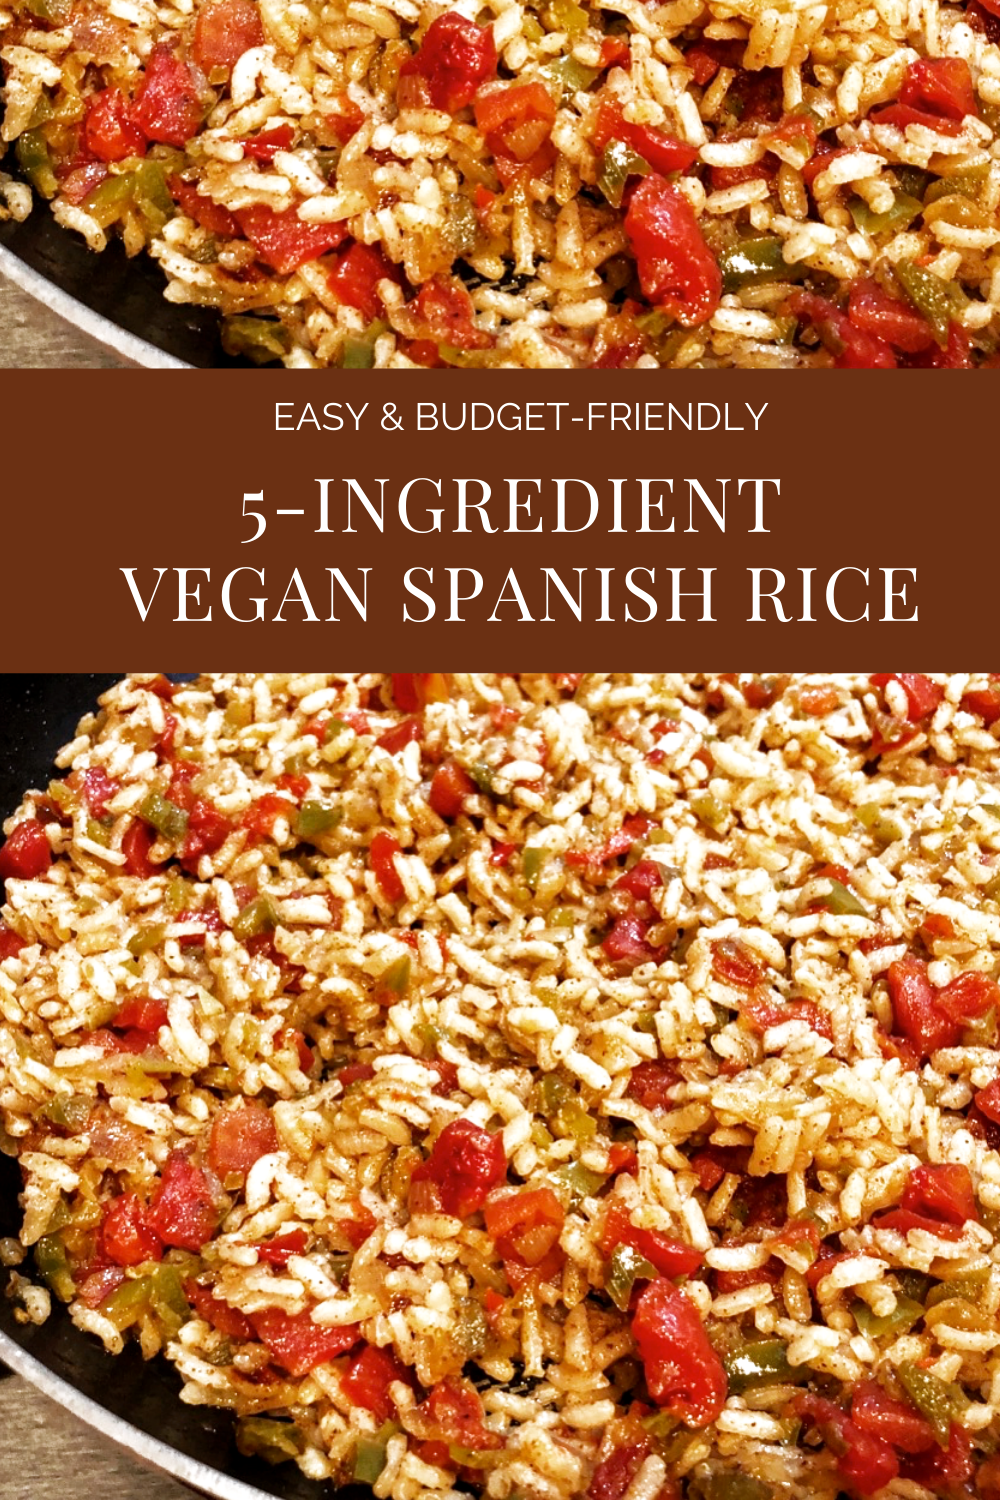 5-Ingredient Vegan Spanish Rice - A quick and easy vegan Spanish rice. Perfect on the side with tacos, as filling for enchiladas and burritos, or a hearty addition to your taco salad! #5ingredientrecipes #plantbasedricerecipes #easyveganrecipes #veganpantryrecipes #veganquarantinecooking #thiswifecooksrecipes #veganmexicanrecipes #quickandeasyrice #30minutedinners via @thiswifecooks